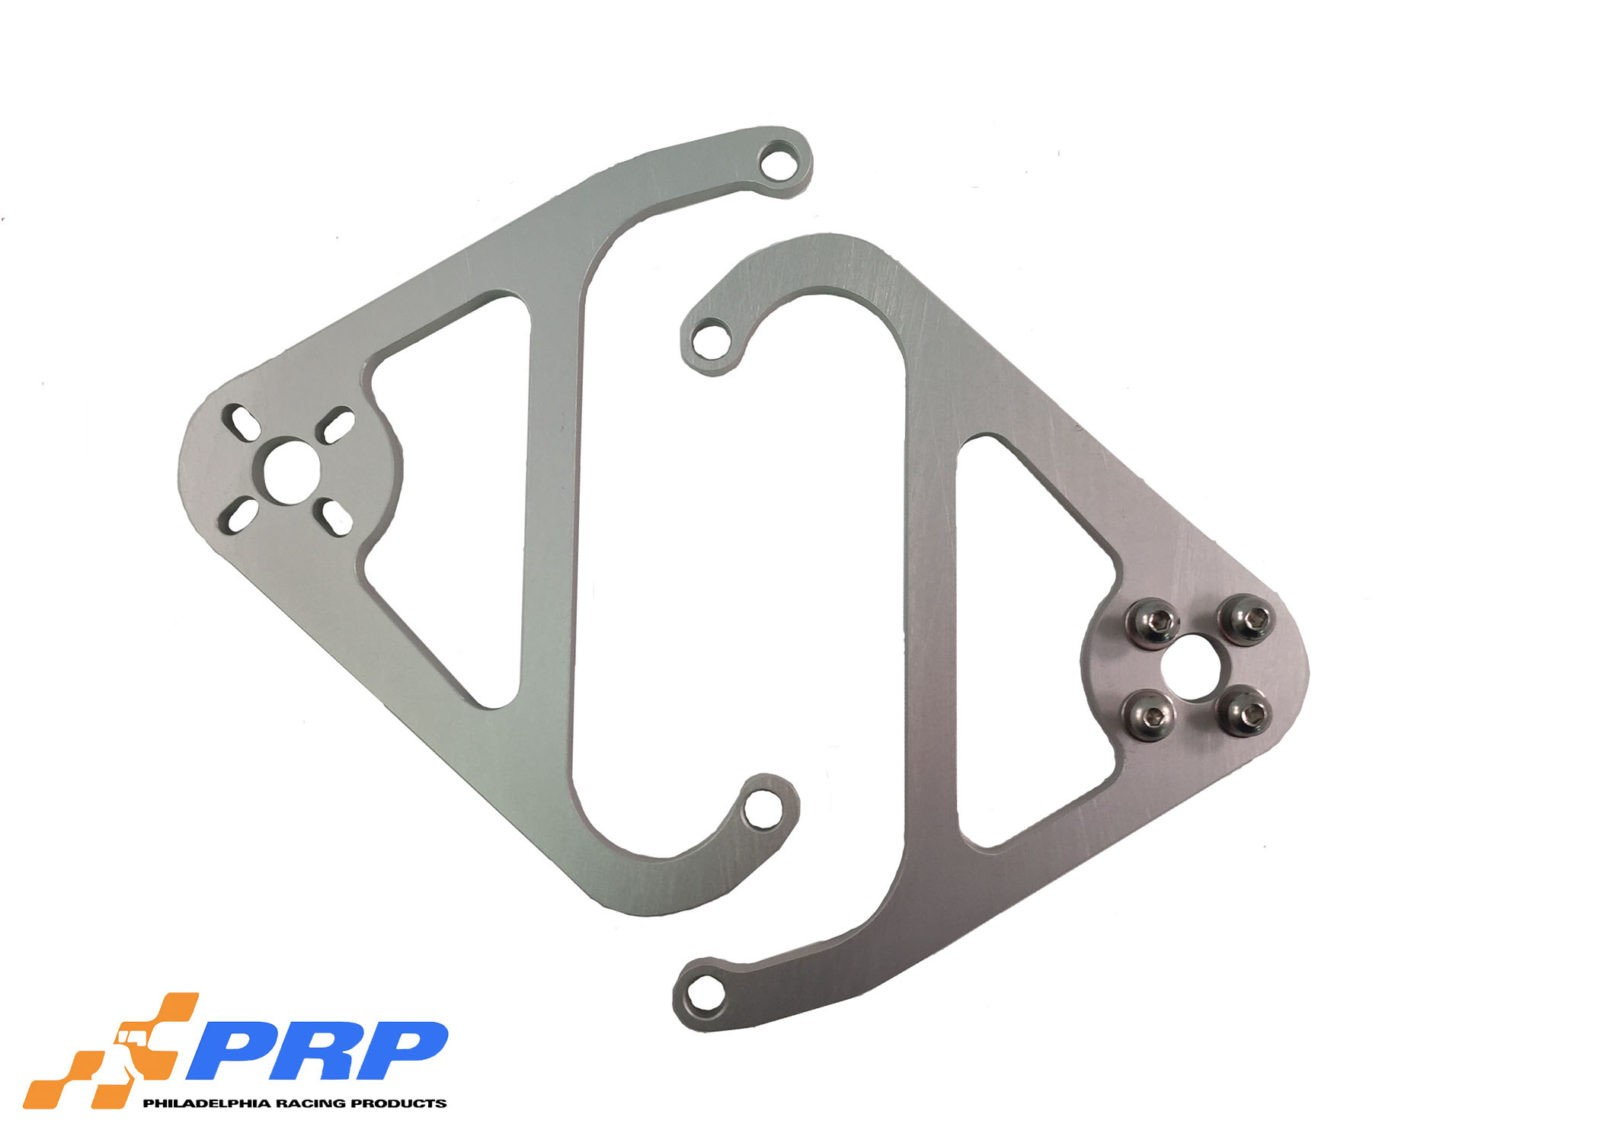 Clear Nitrous Valve Mounting Brackets made by PRP Racing Products